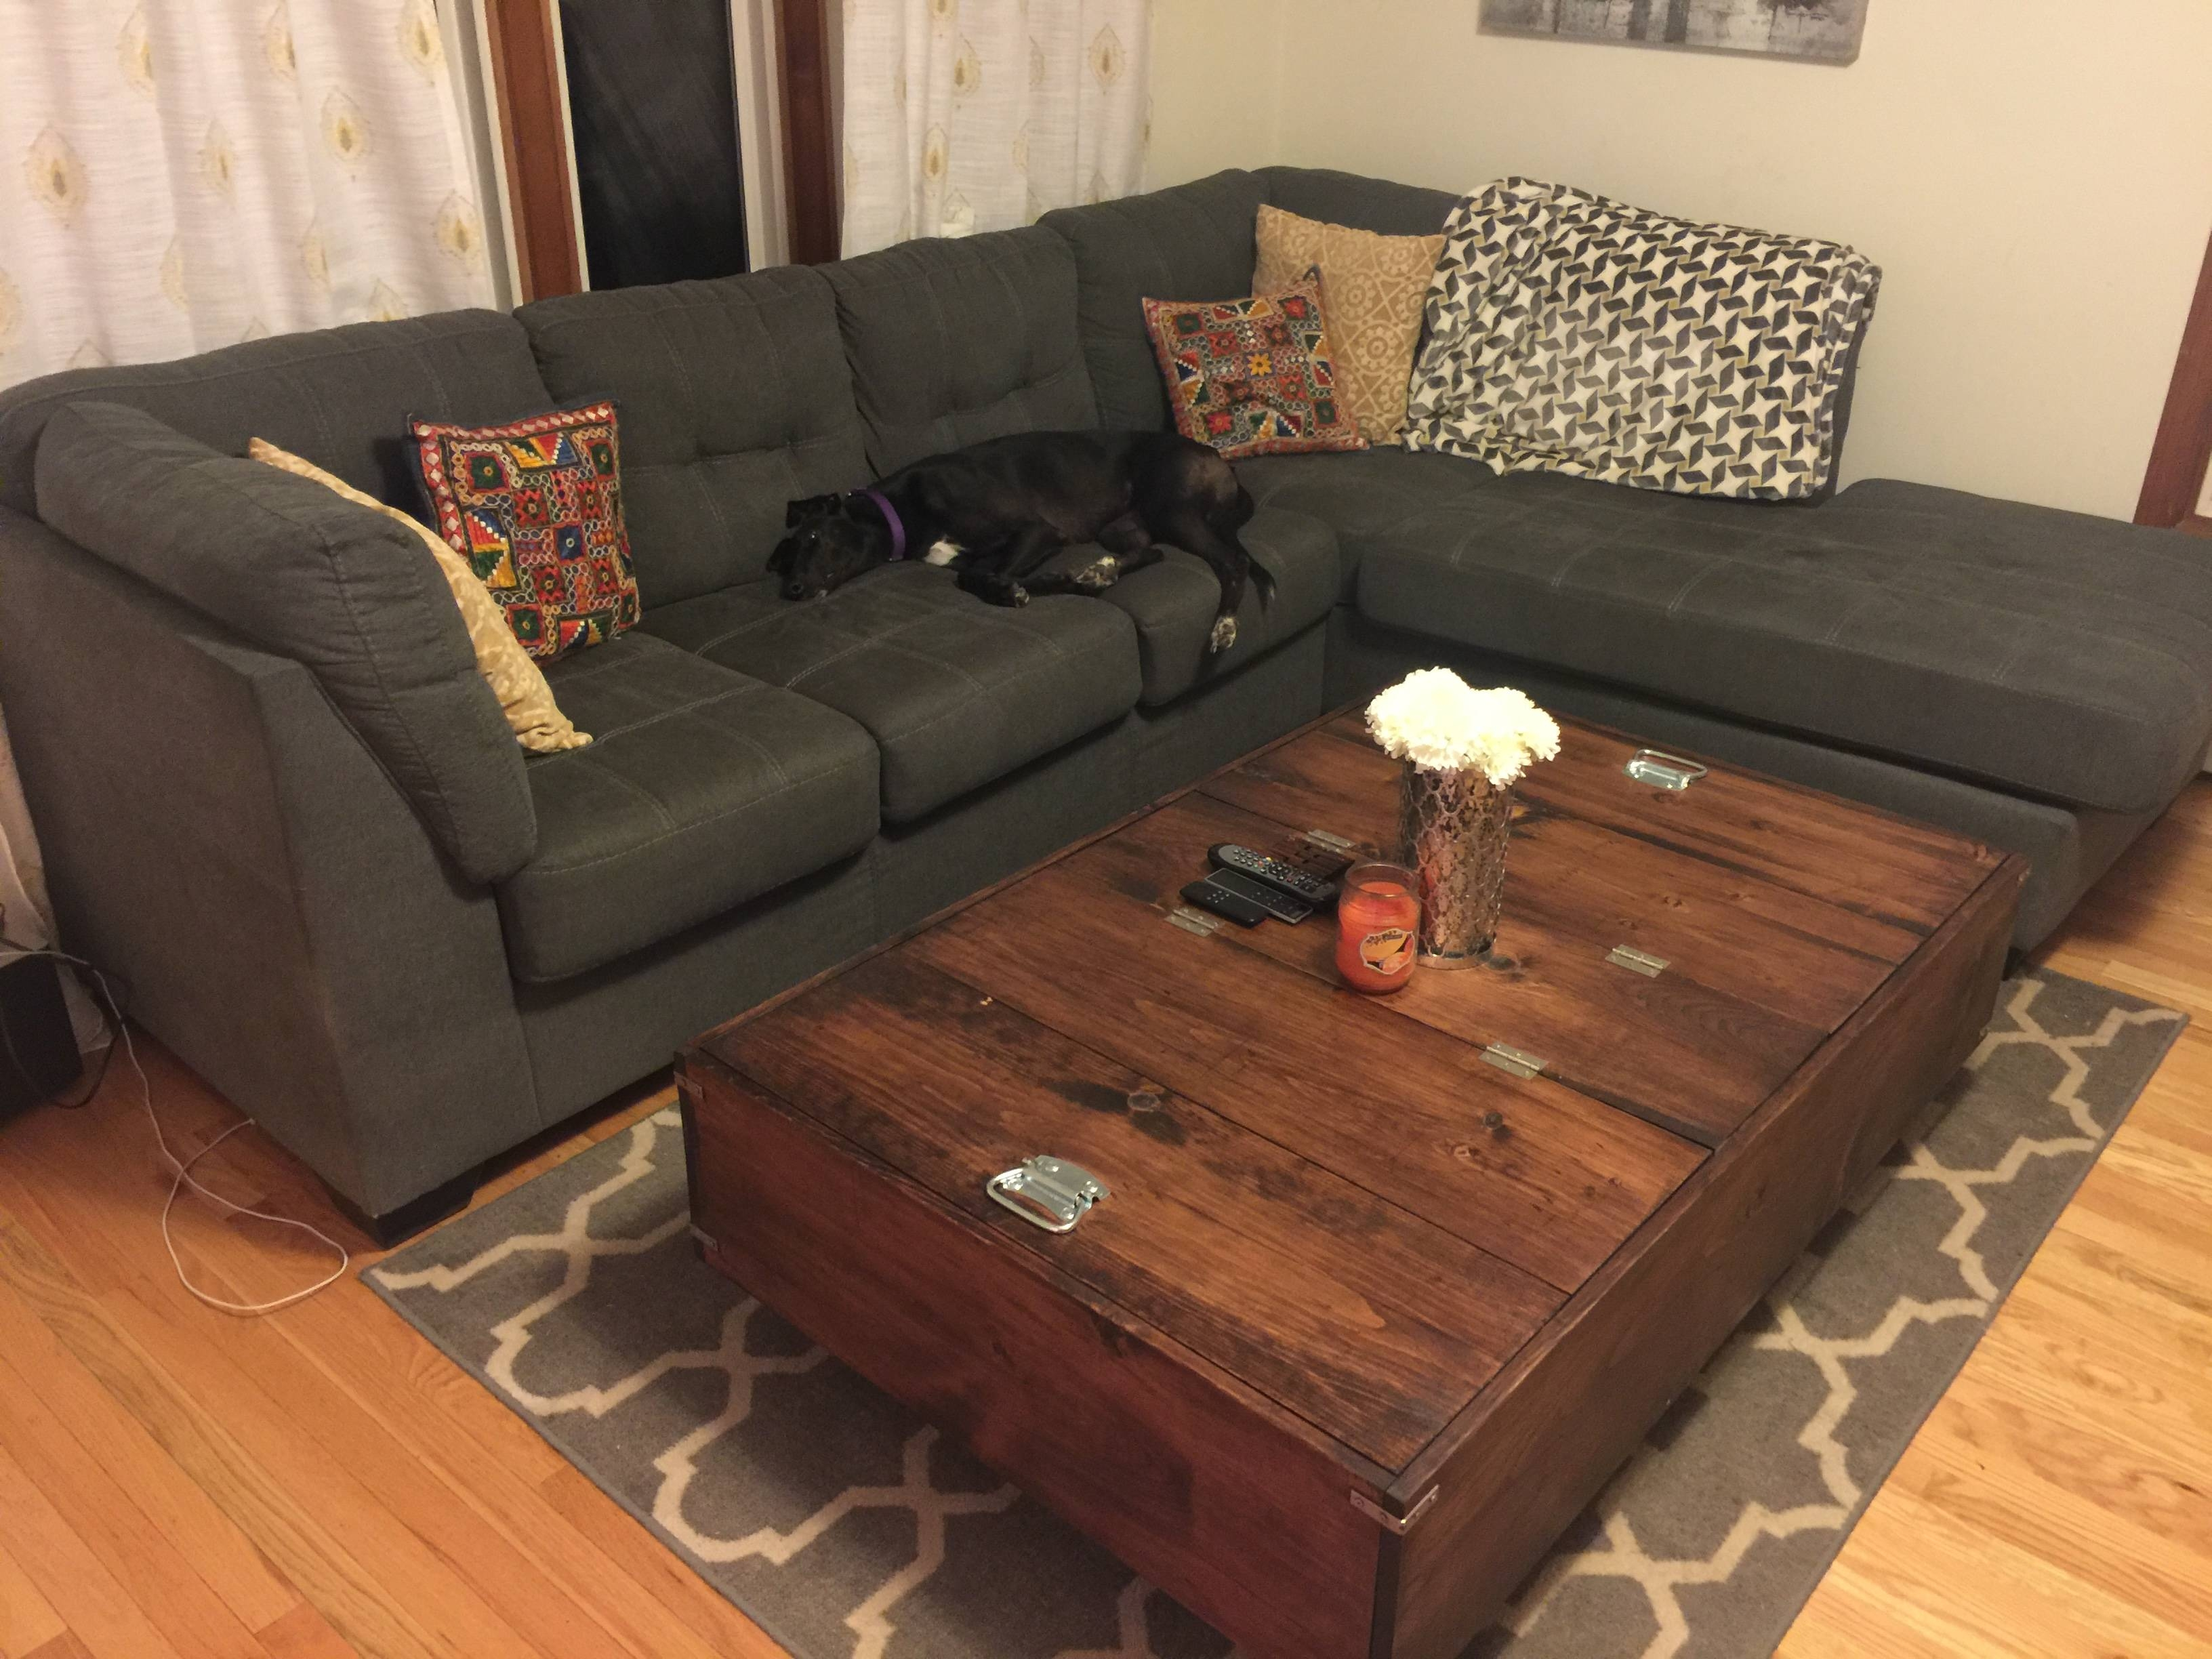 Diy Large Coffee Table With Storage - Album On Imgur intended for Large Coffee Table With Storage (Image 6 of 12)